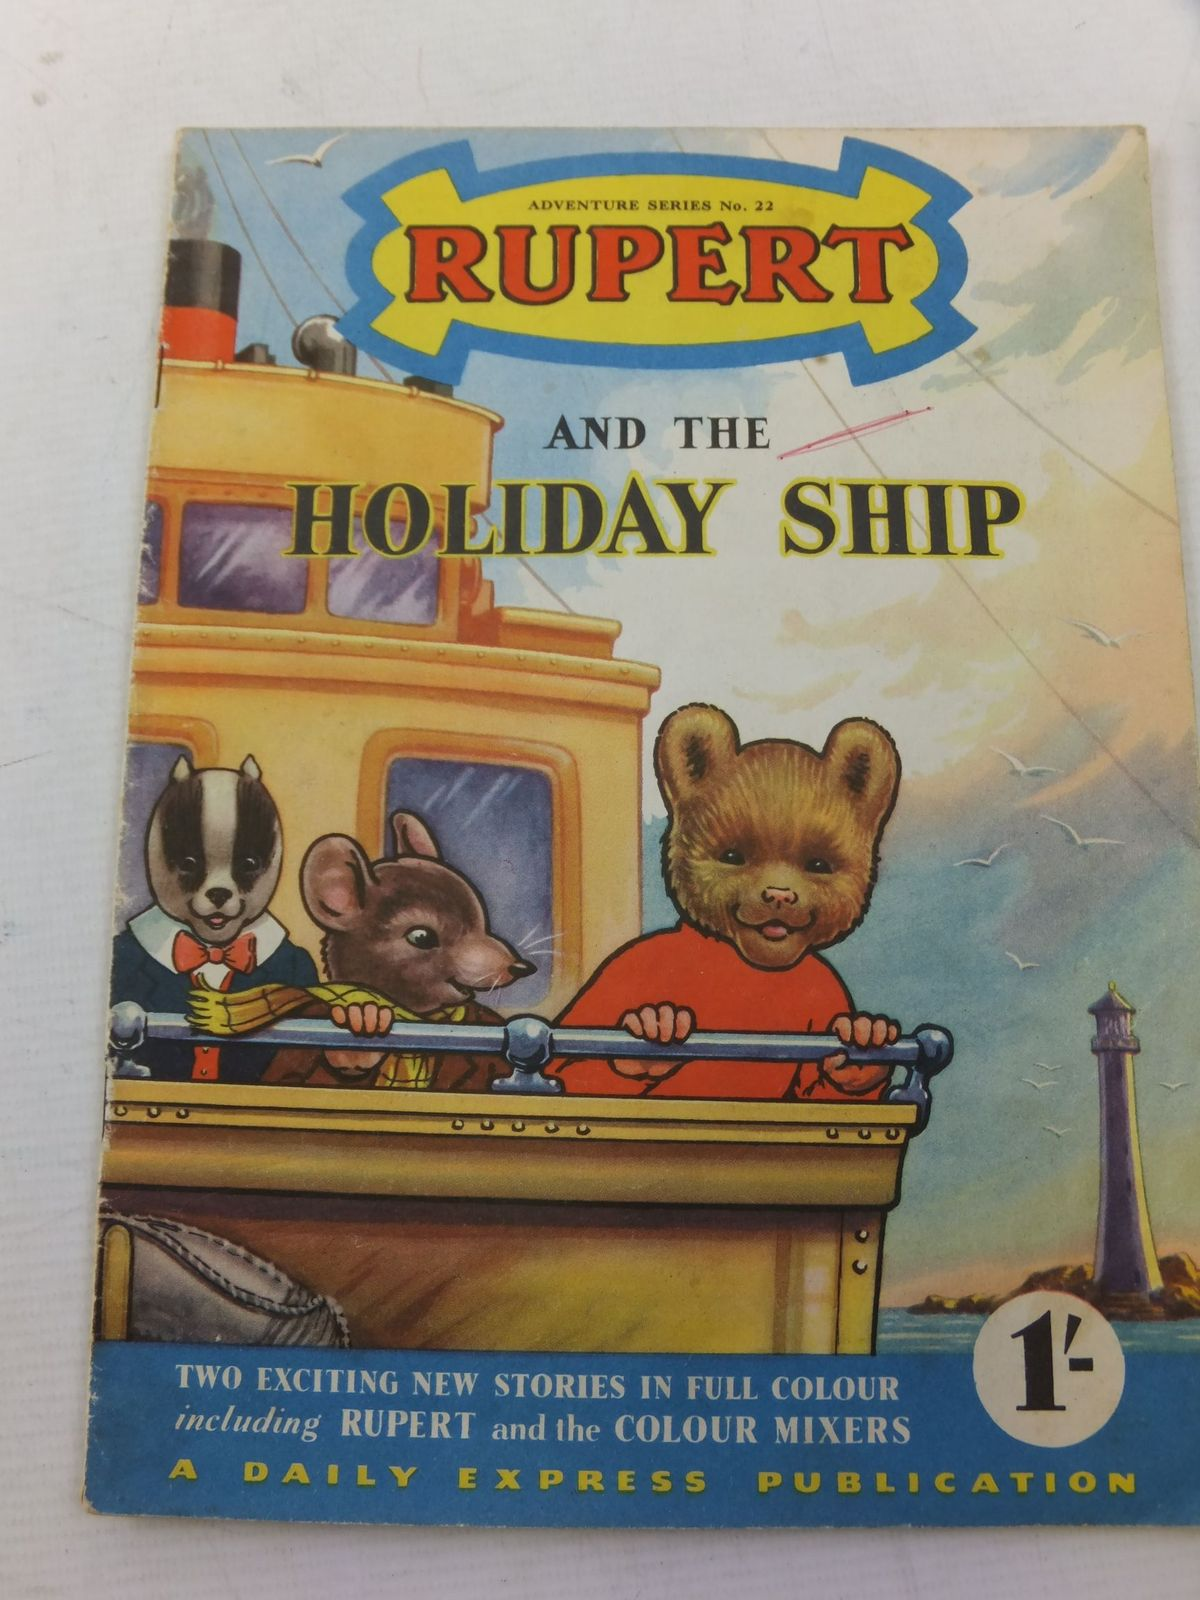 Photo of RUPERT ADVENTURE SERIES No. 22 - RUPERT AND THE HOLIDAY SHIP- Stock Number: 2114251